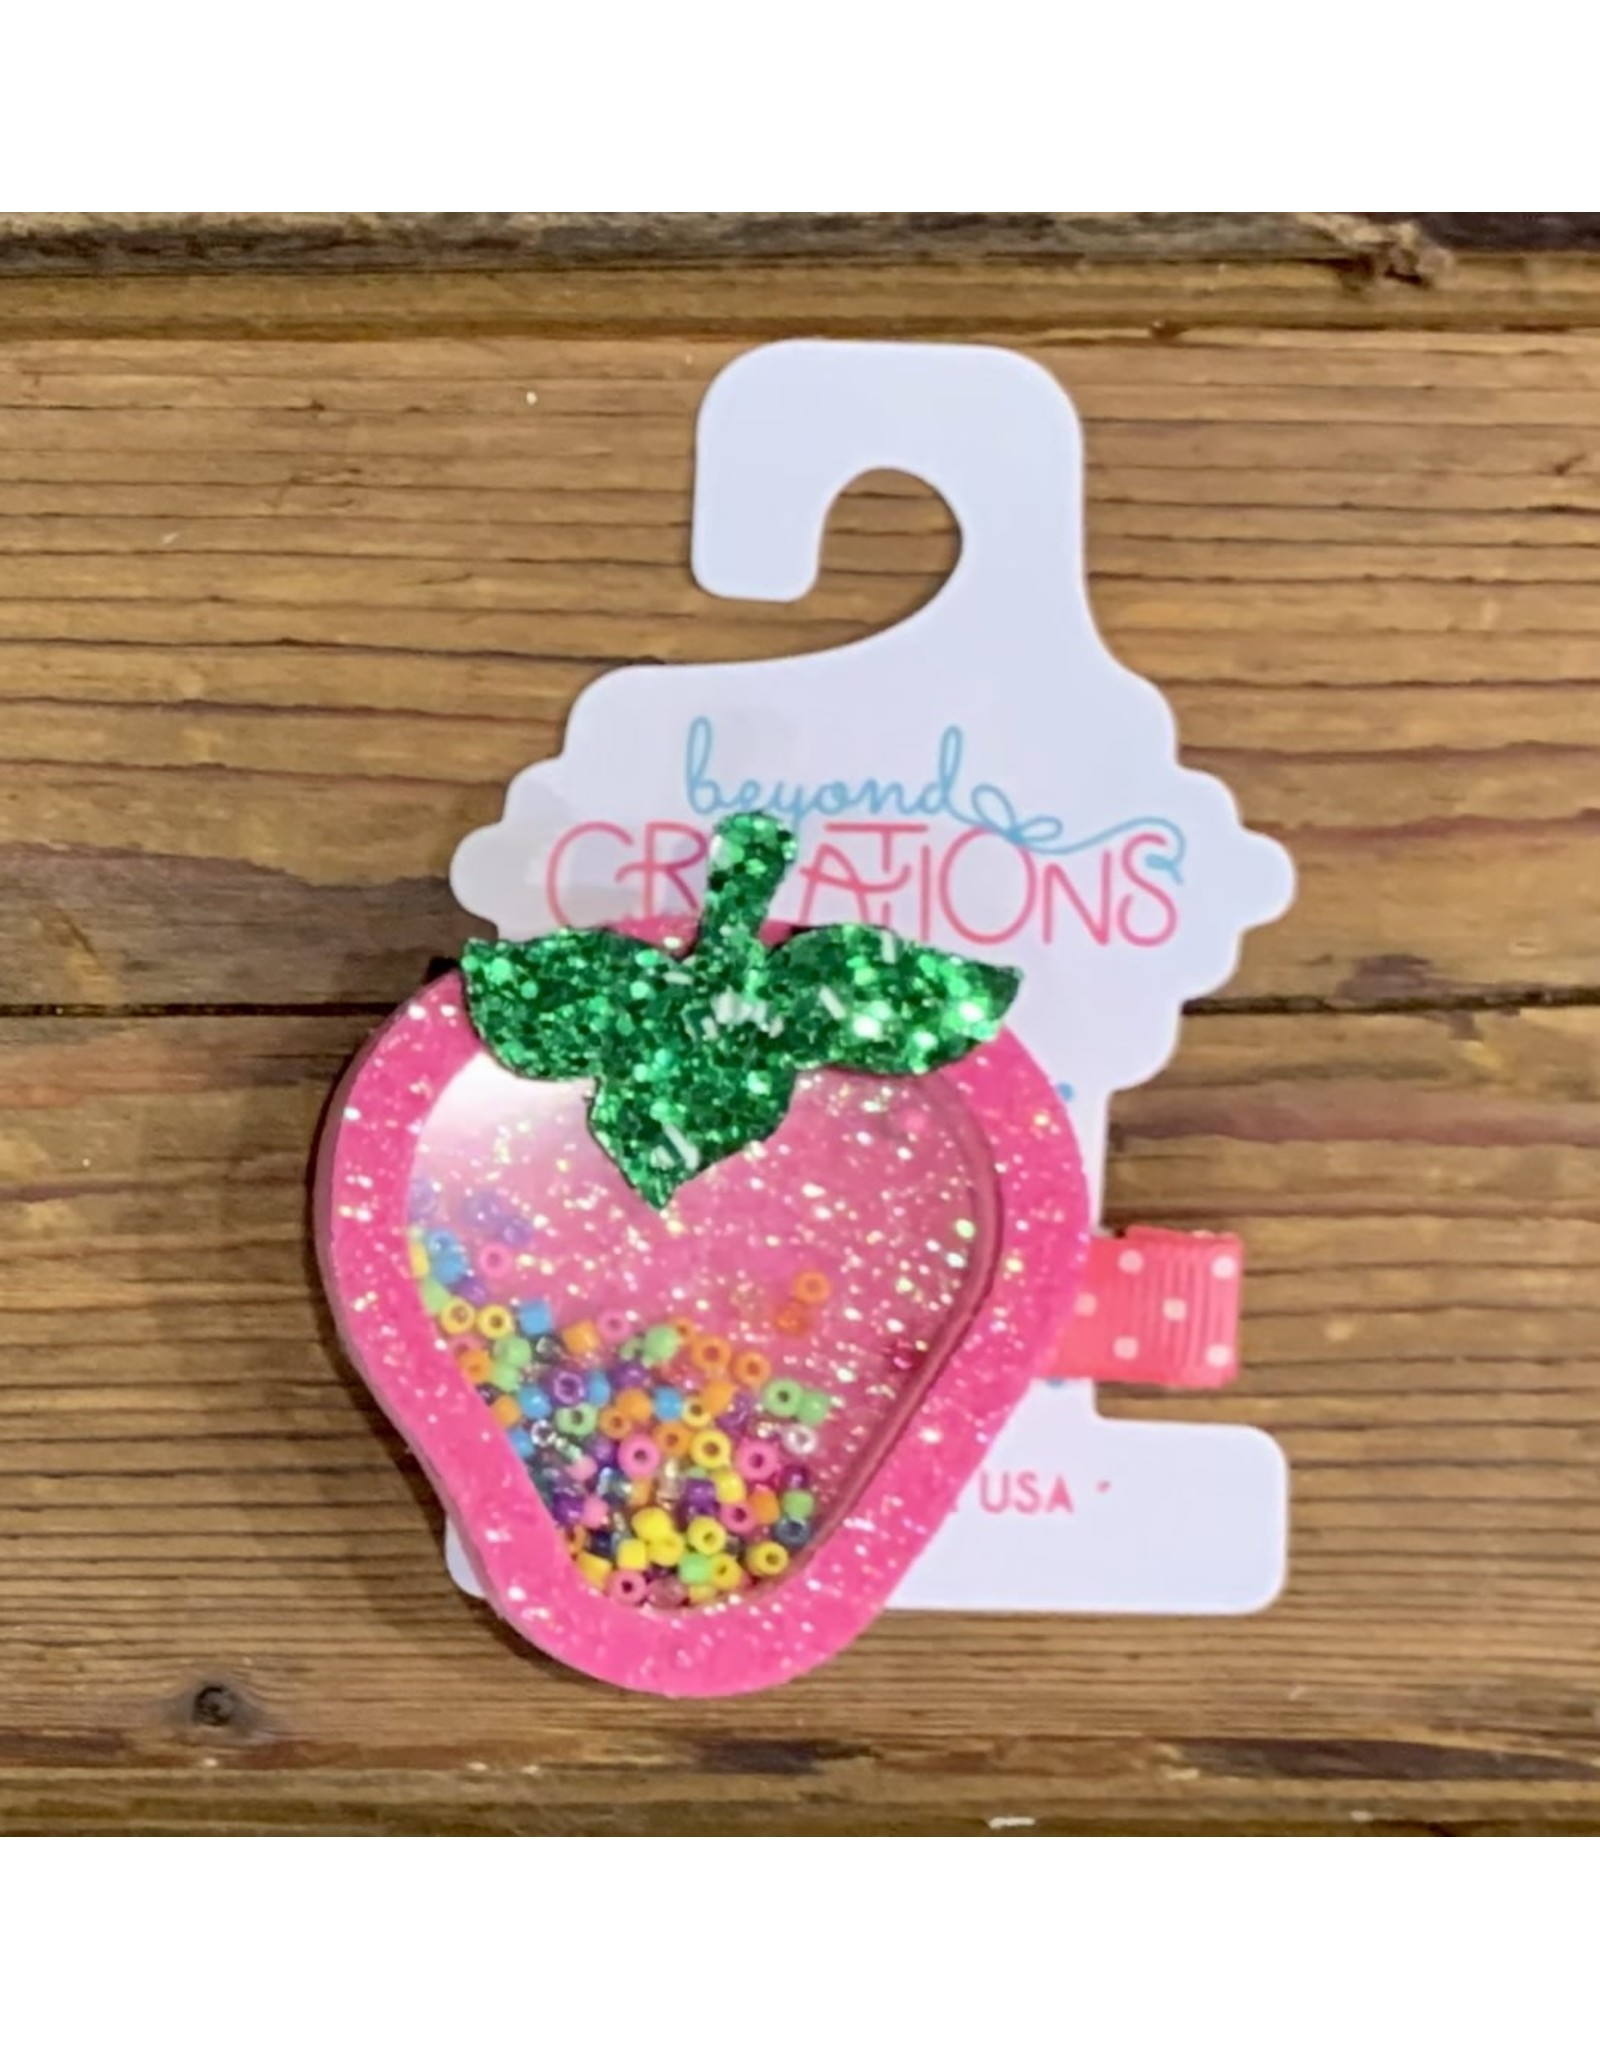 Beyond Creations BC Shaker Pink Strawberry Glitter Clip